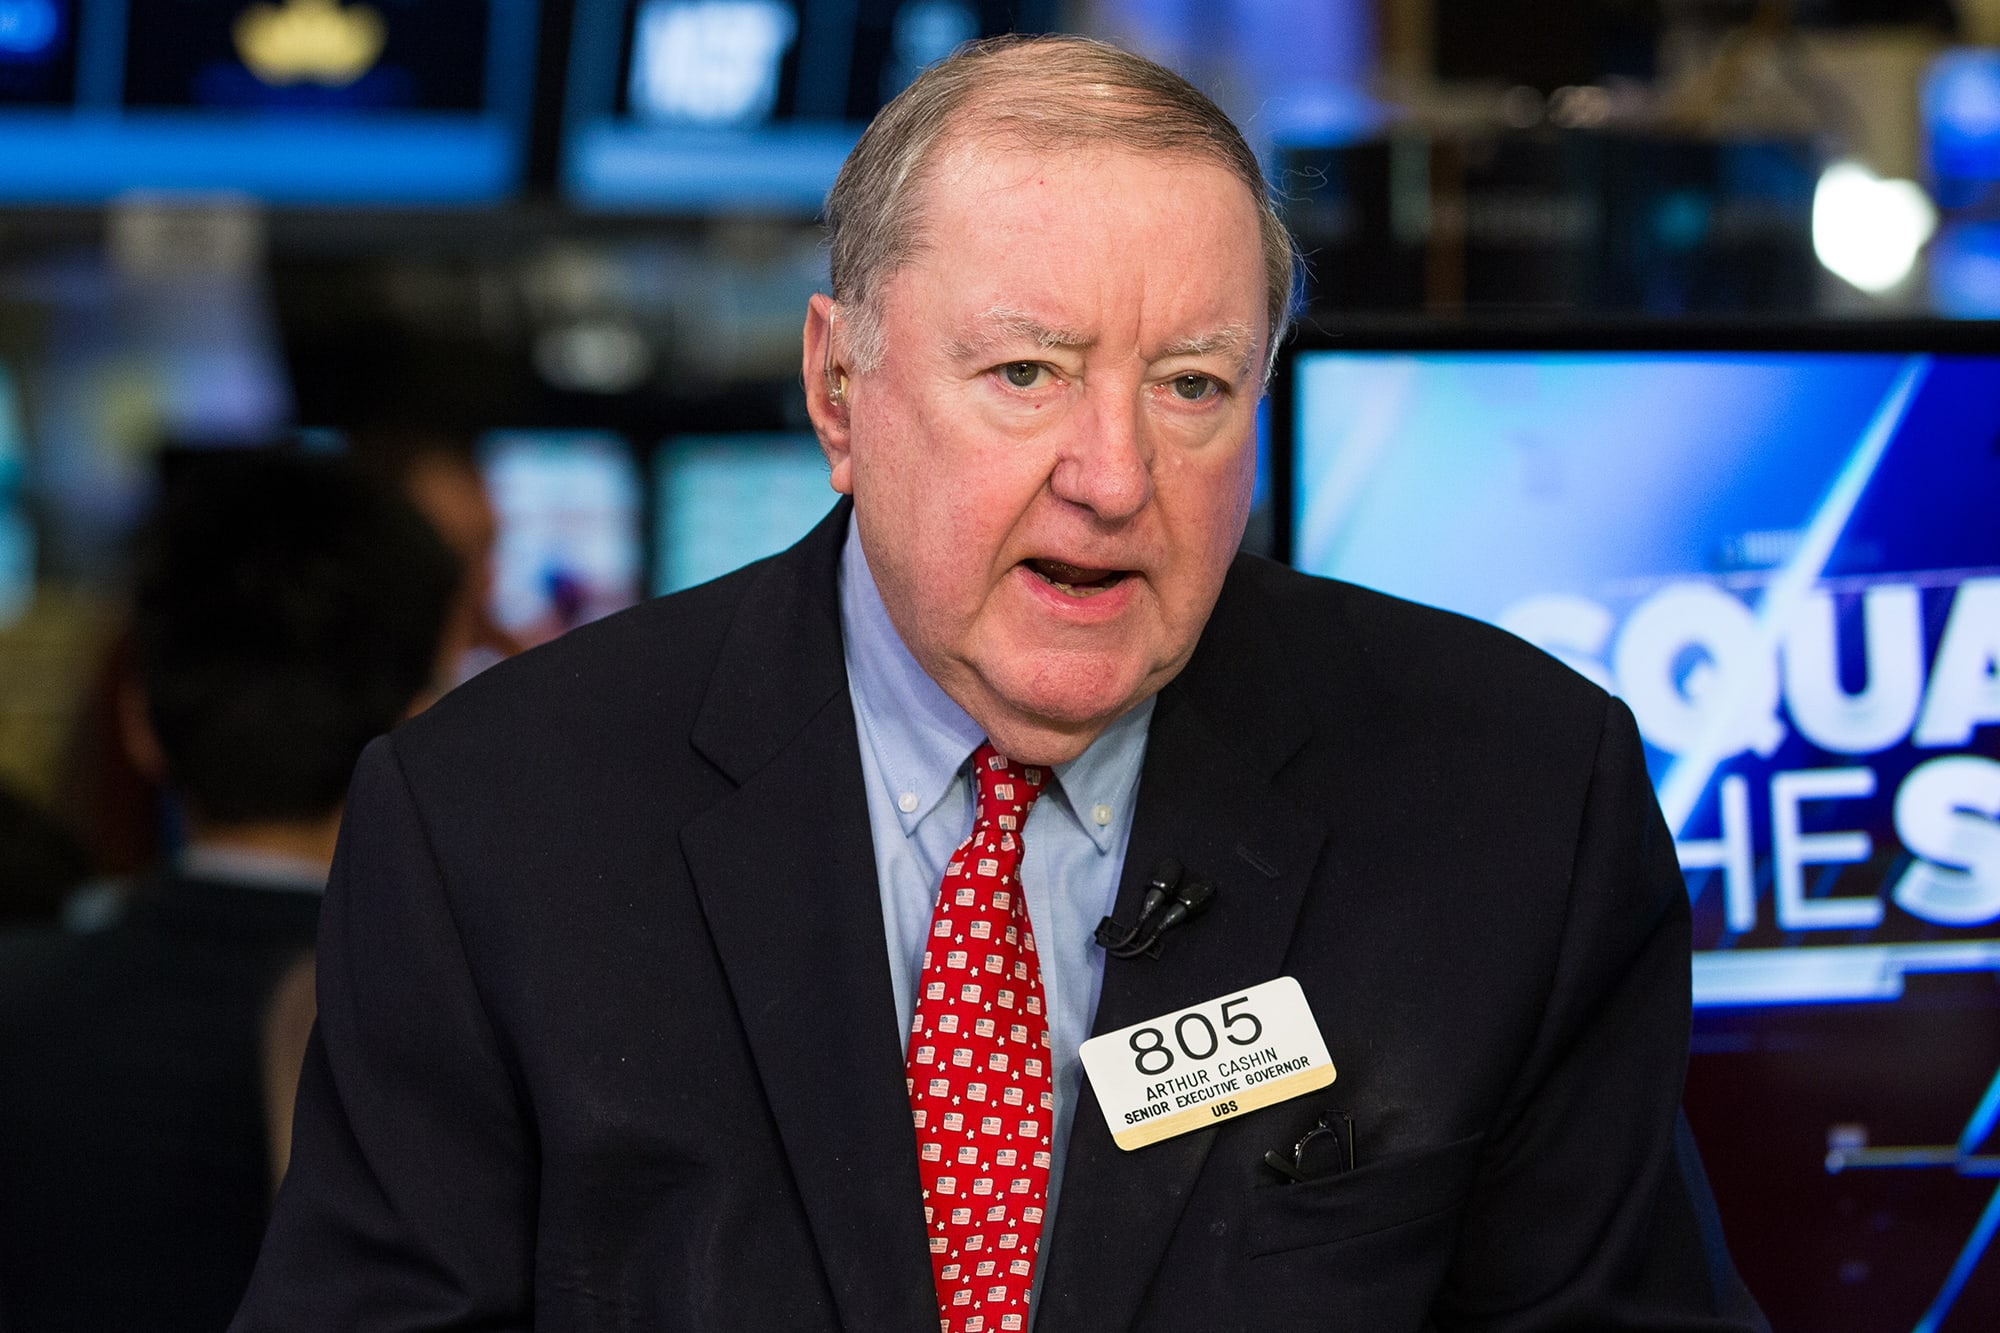 Cashin: Fed gives stocks a 'breath of fresh air' but full market recovery may take some time yet